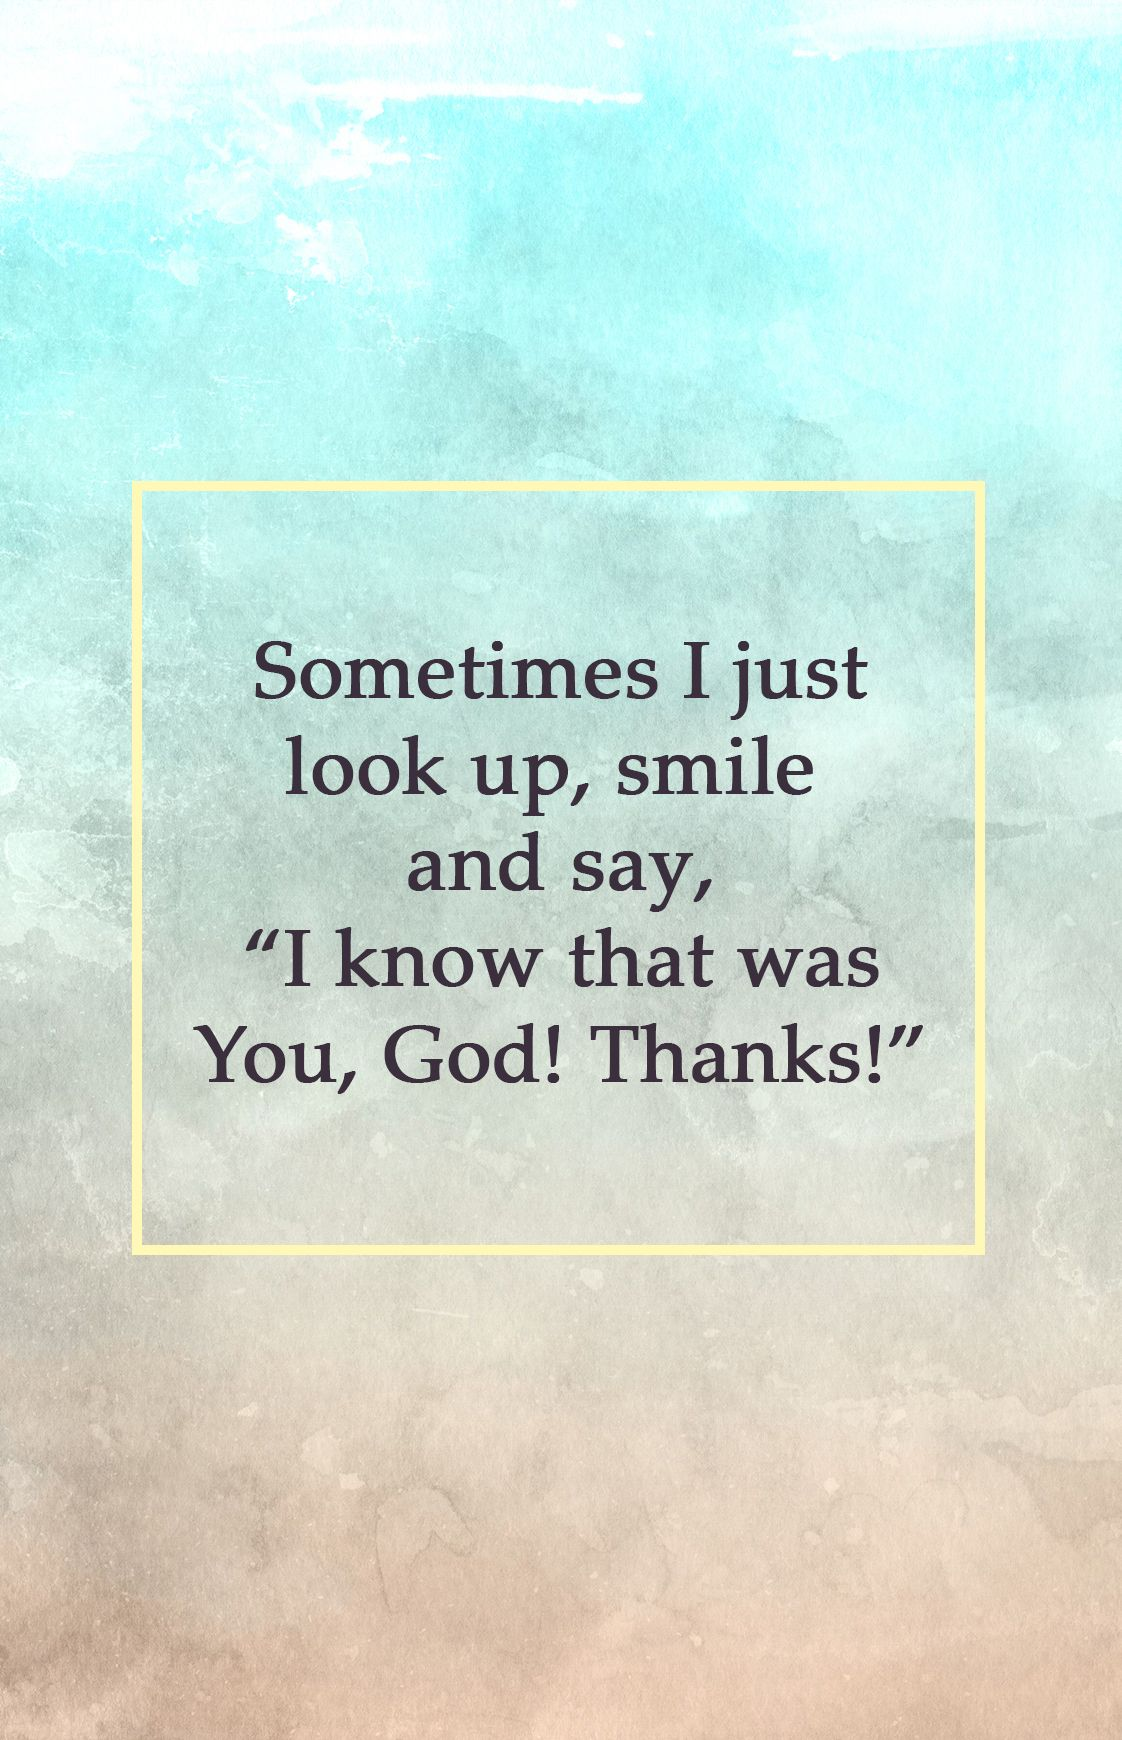 Sometimes I Just Look Up Smile And Say I Know That Was You God Thanks Quotes About God Special Quotes Inspirational Quotes